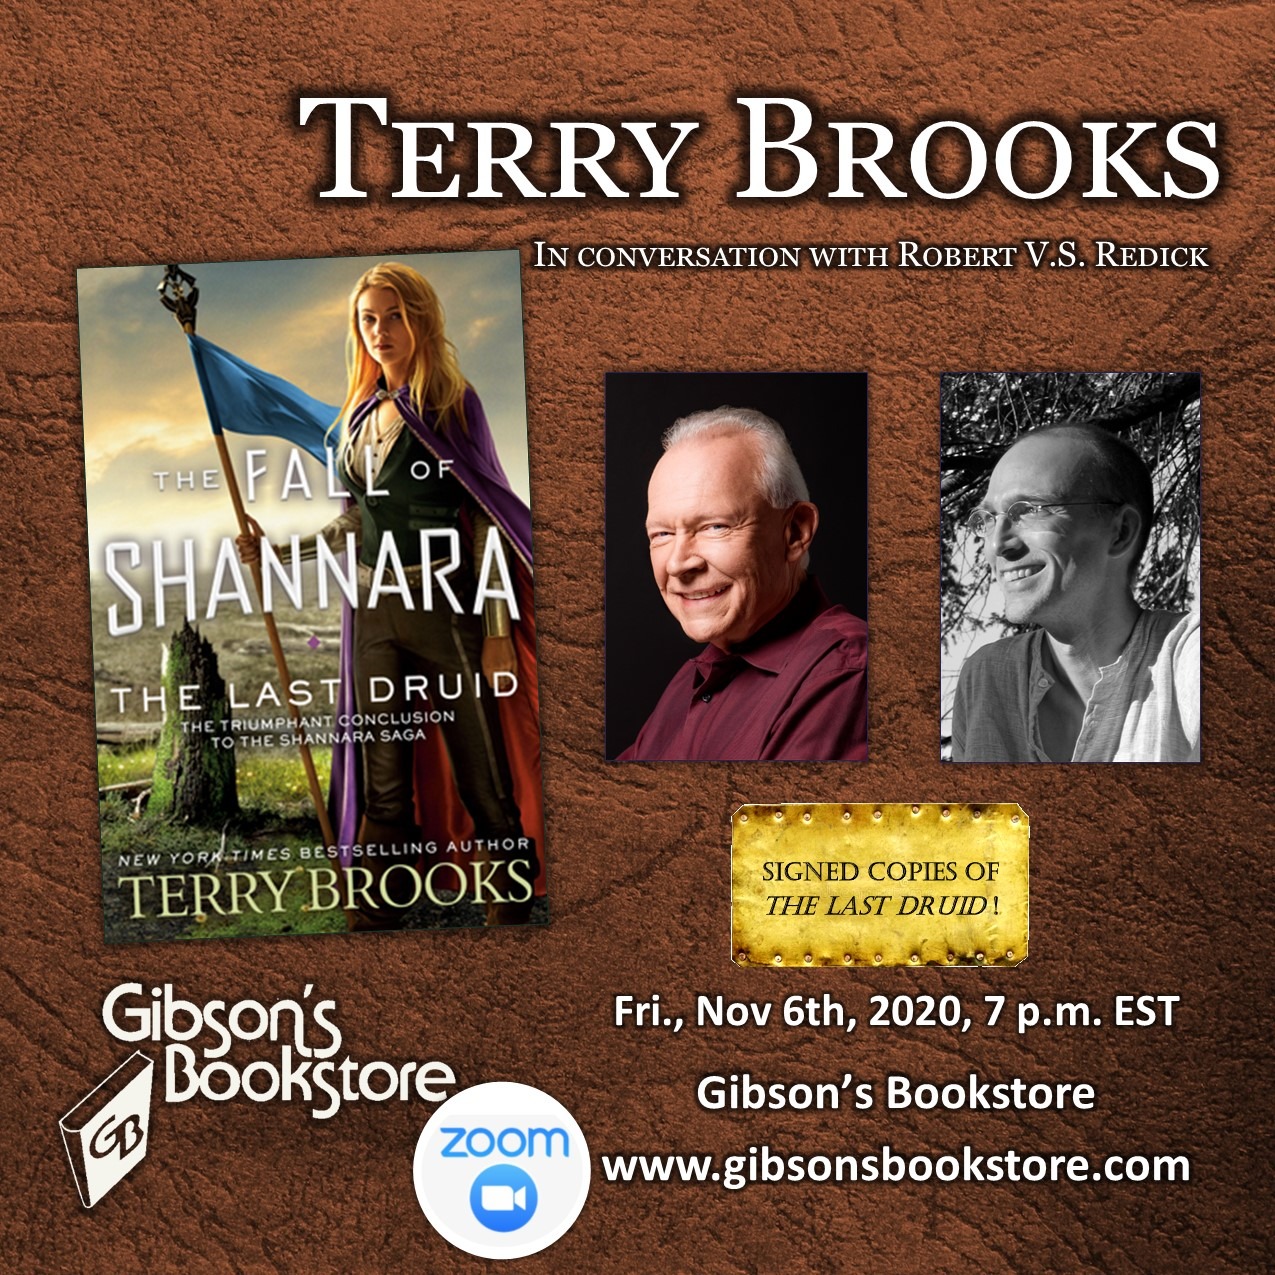 Zoom Event: Gibson's Bookstore